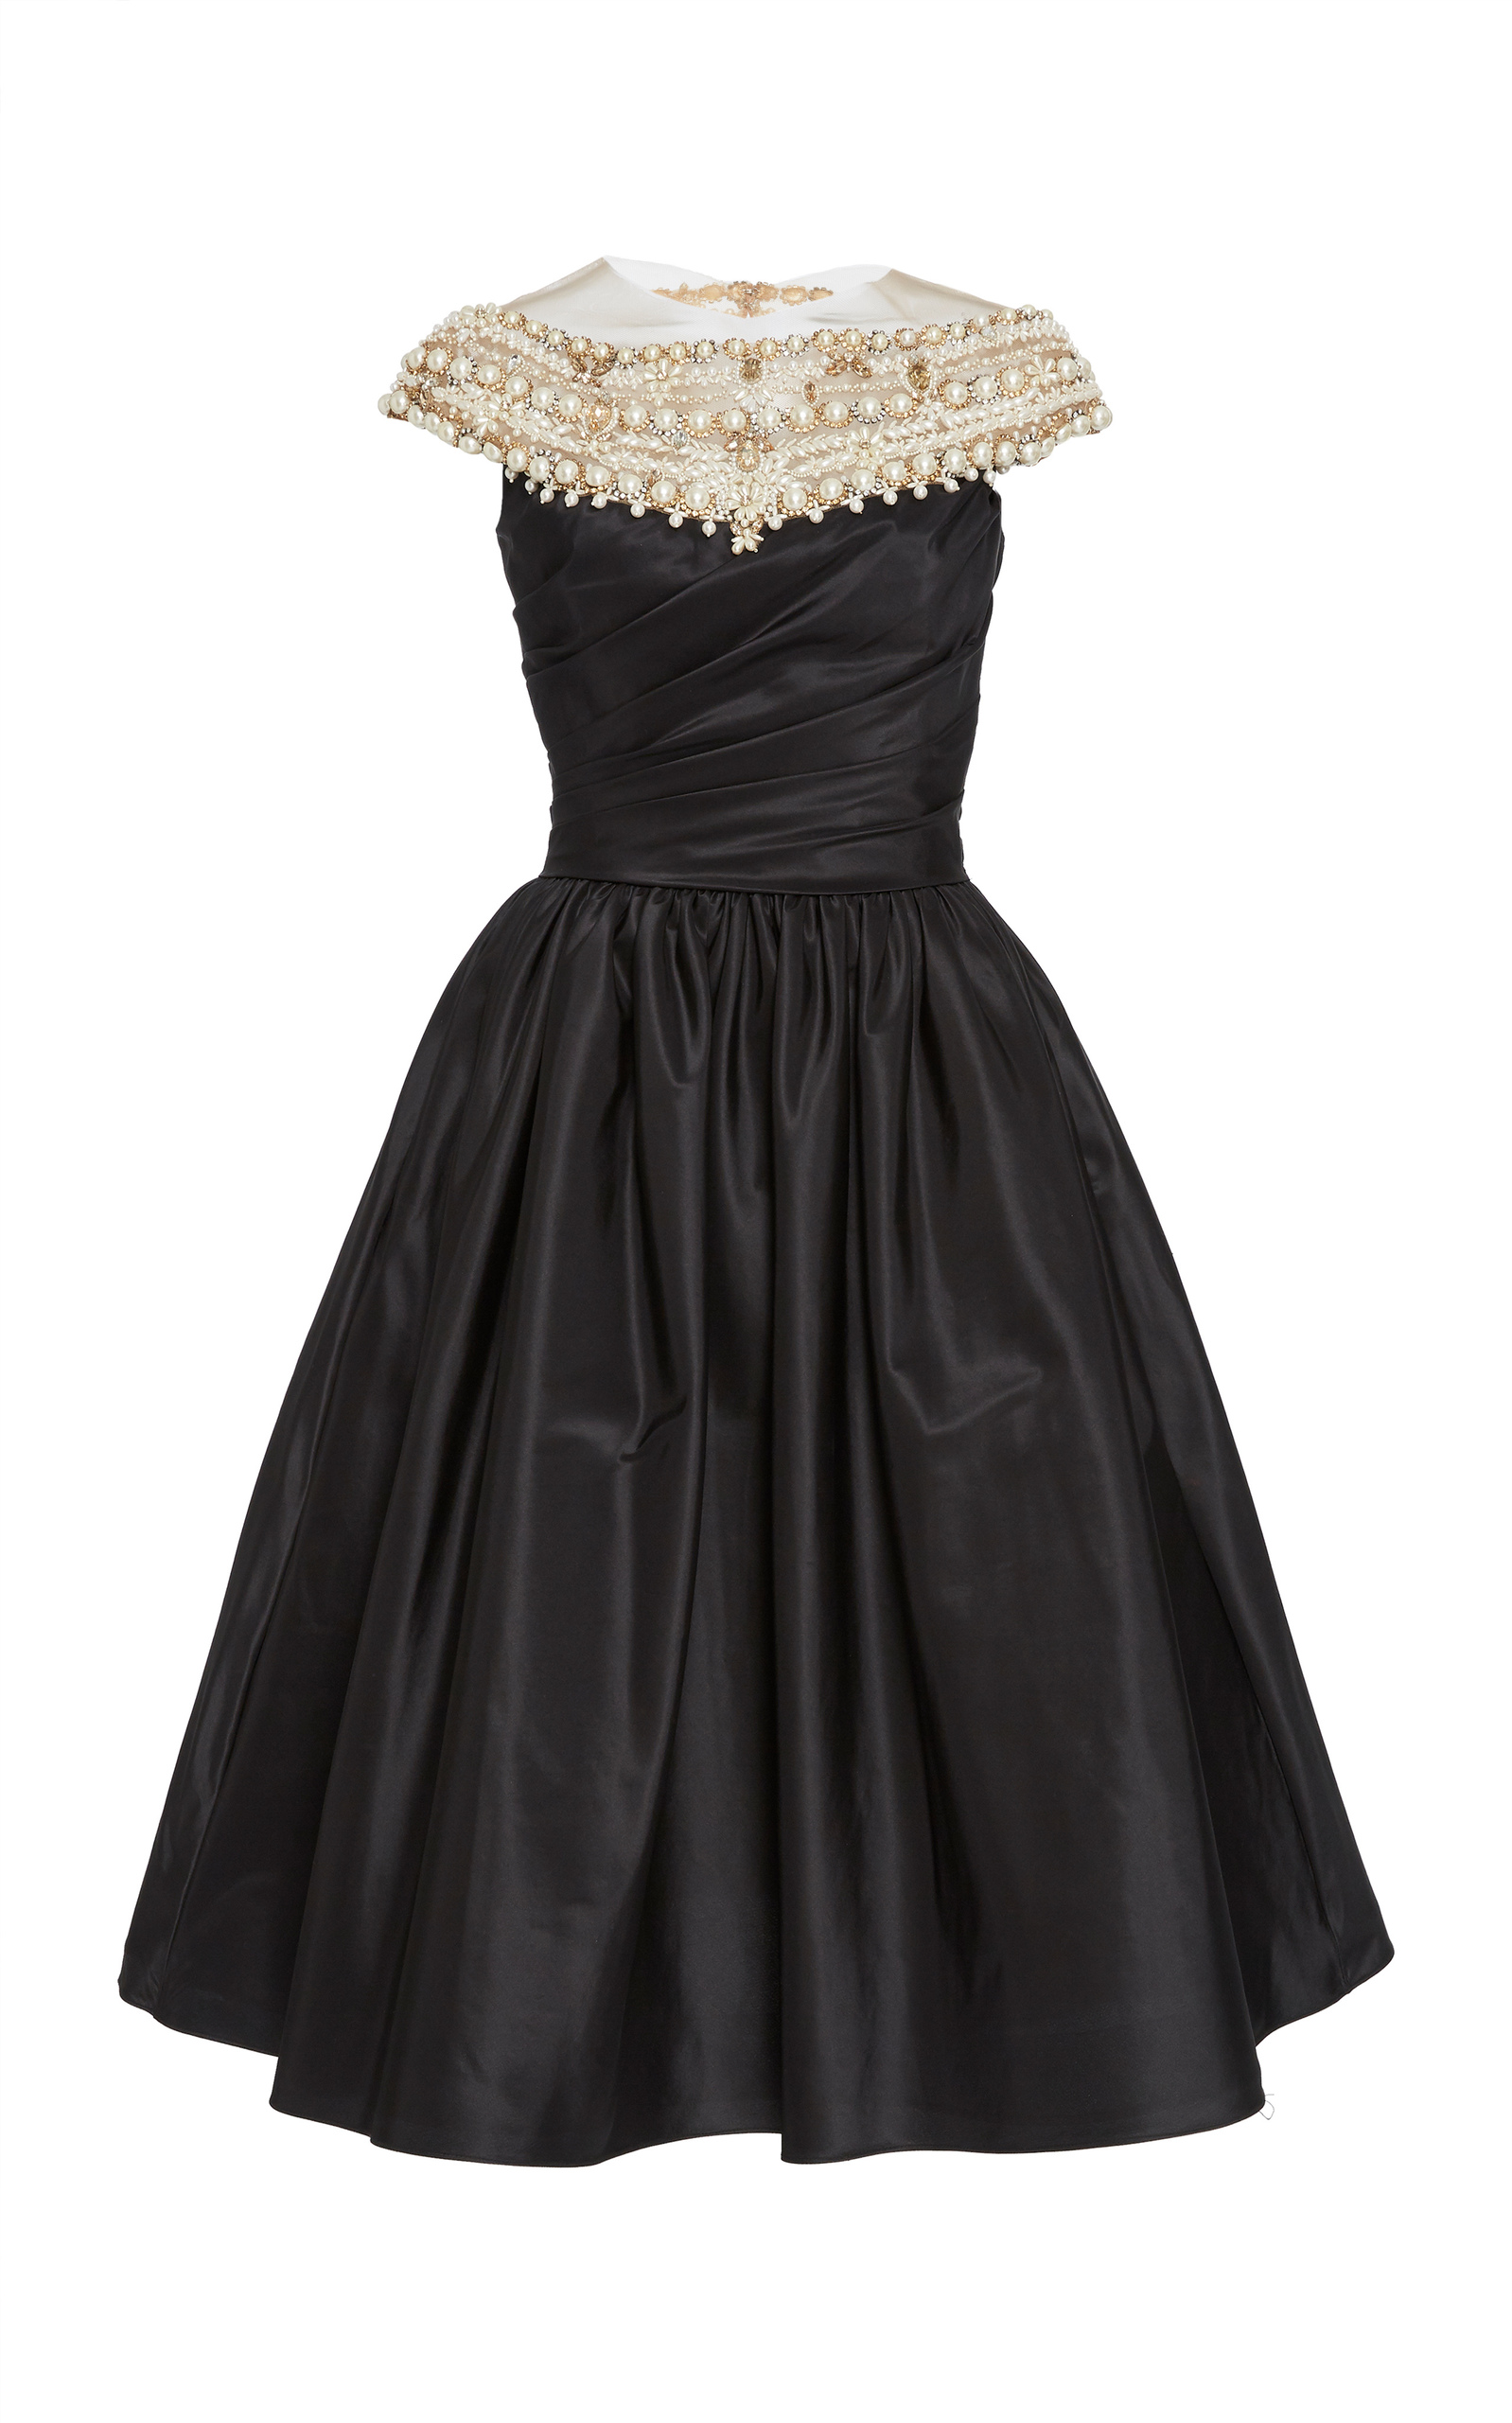 Couture Black Embroidered Silk Taffeta Cocktail Dress from District 5 Boutique